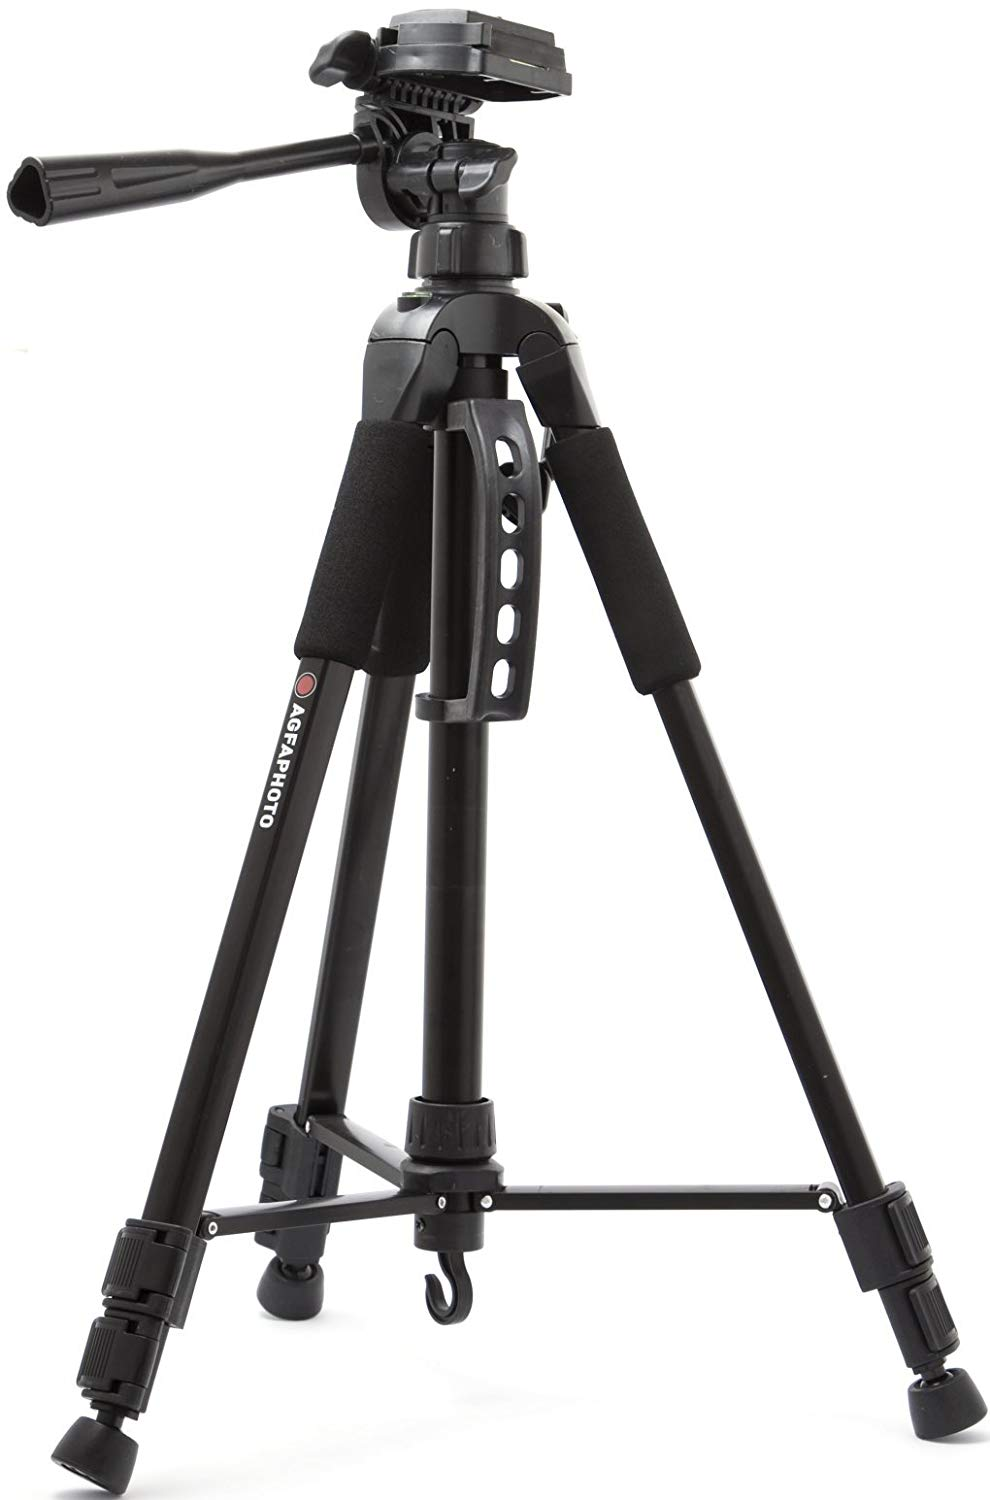 AGFA 60-Inch Photo Video Professional Tripod with Carrying Case by Agfa